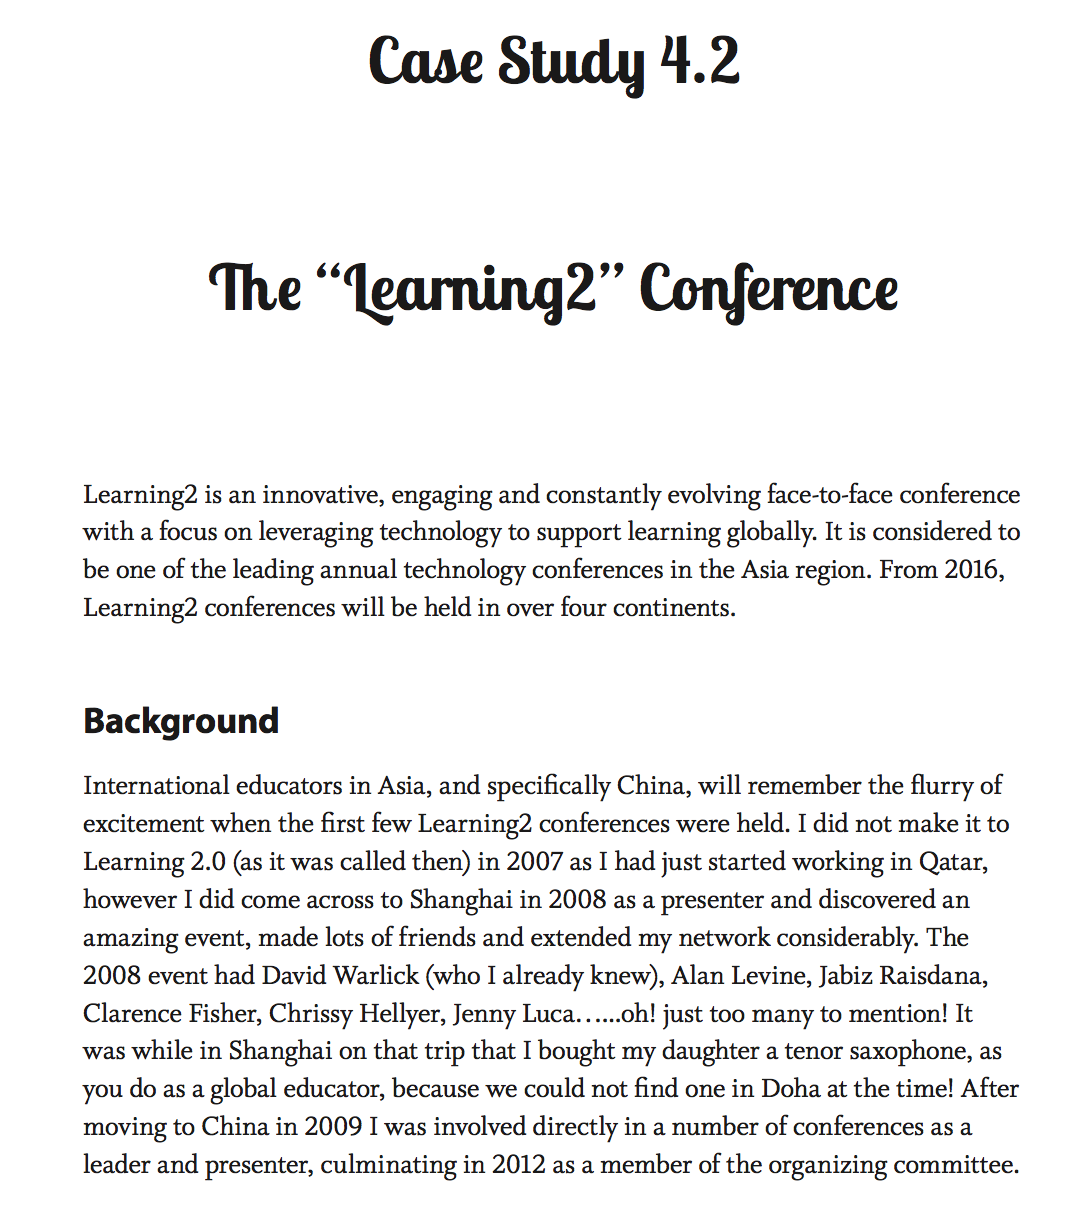 The Global Educator Case Study 4.2 - Learning2 Conference